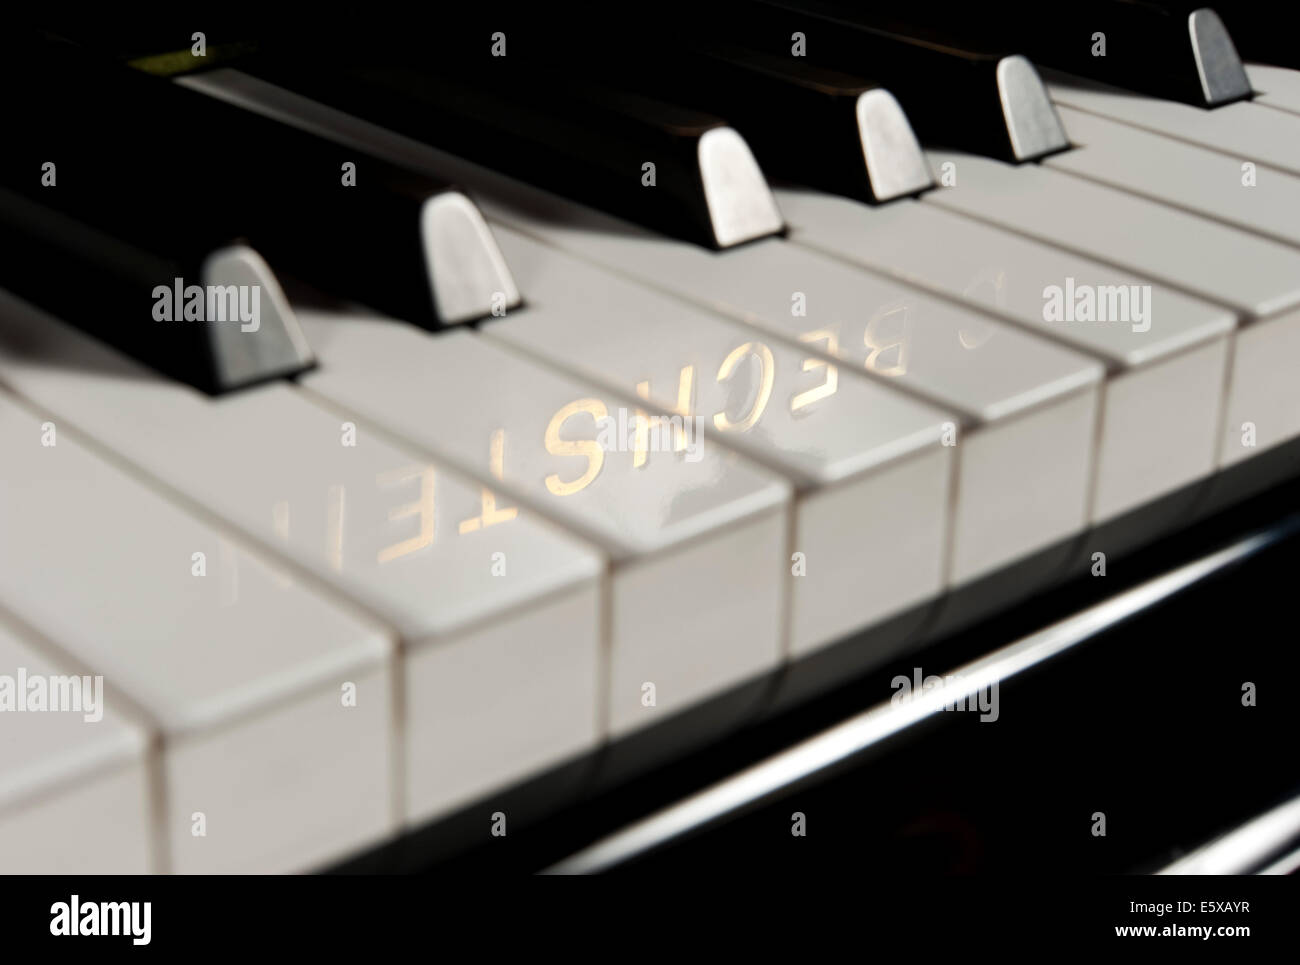 Bechstein Piano Stock Photos & Bechstein Piano Stock Images - Alamy